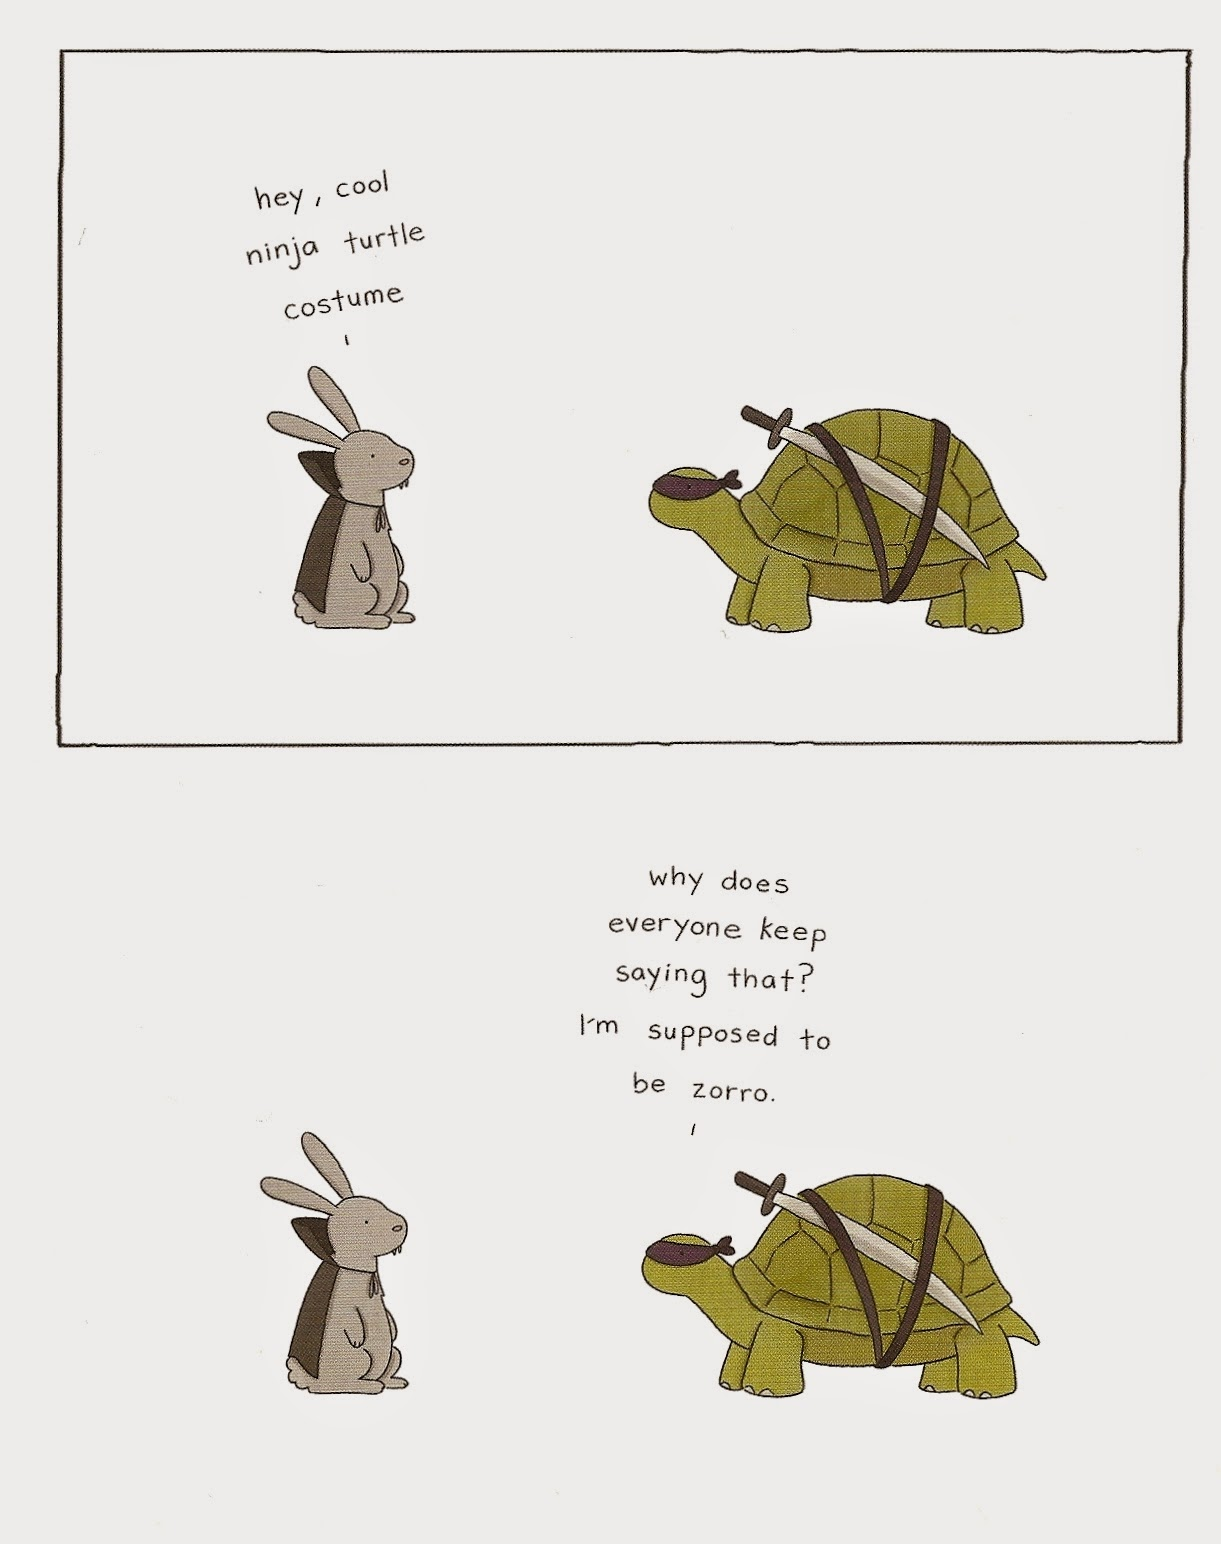 Every day is like wednesday on the little world of liz climo